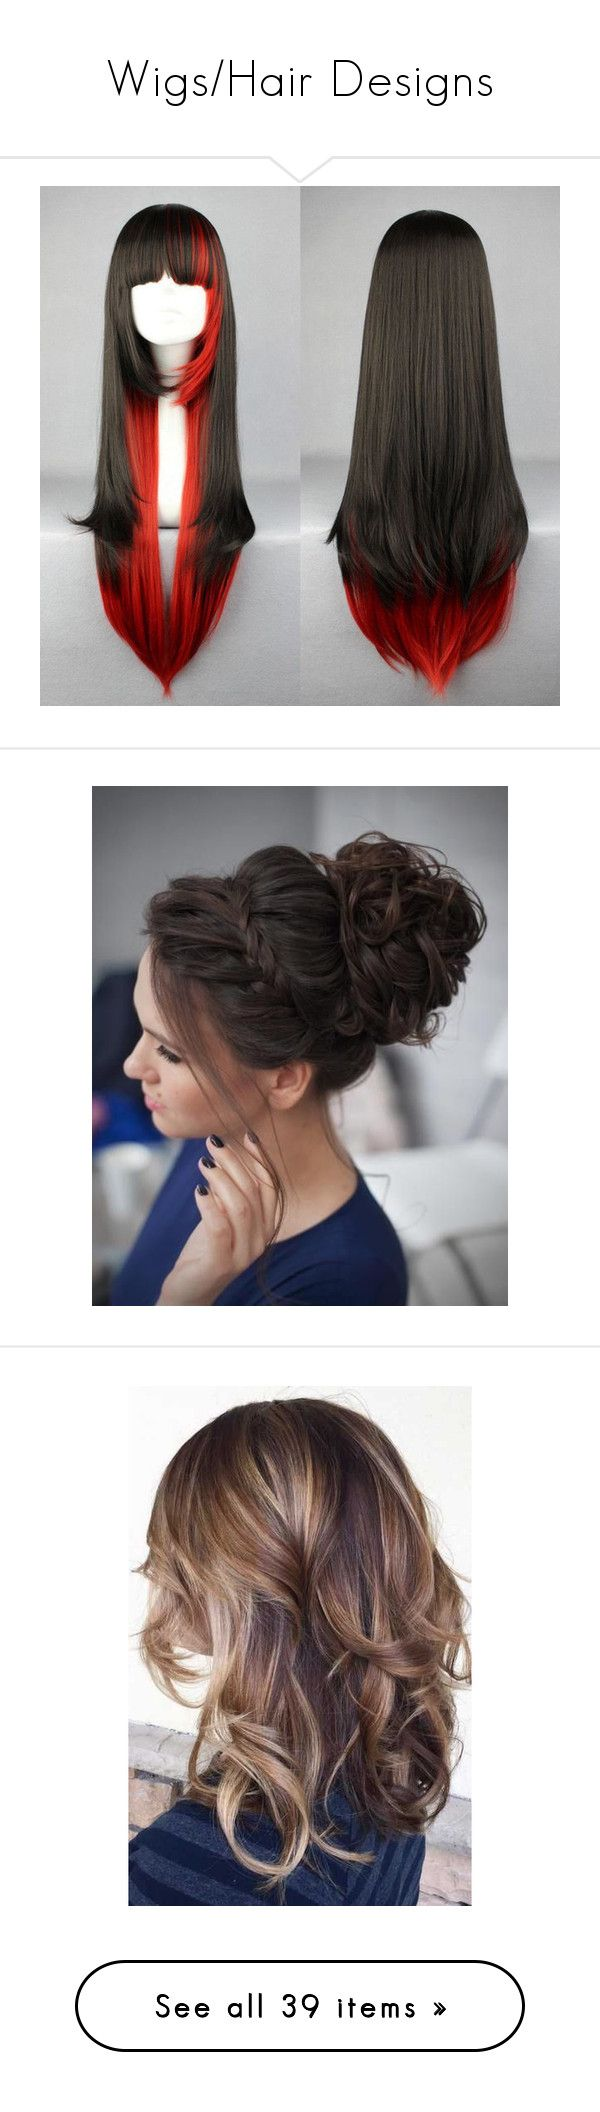 """""""Wigs/Hair Designs"""" by barryallen269 on Polyvore featuring beauty products, haircare, hair styling tools, hair, hairstyles, beauty, fine curly hair care, fine hair care, curly hair care and cabelos"""